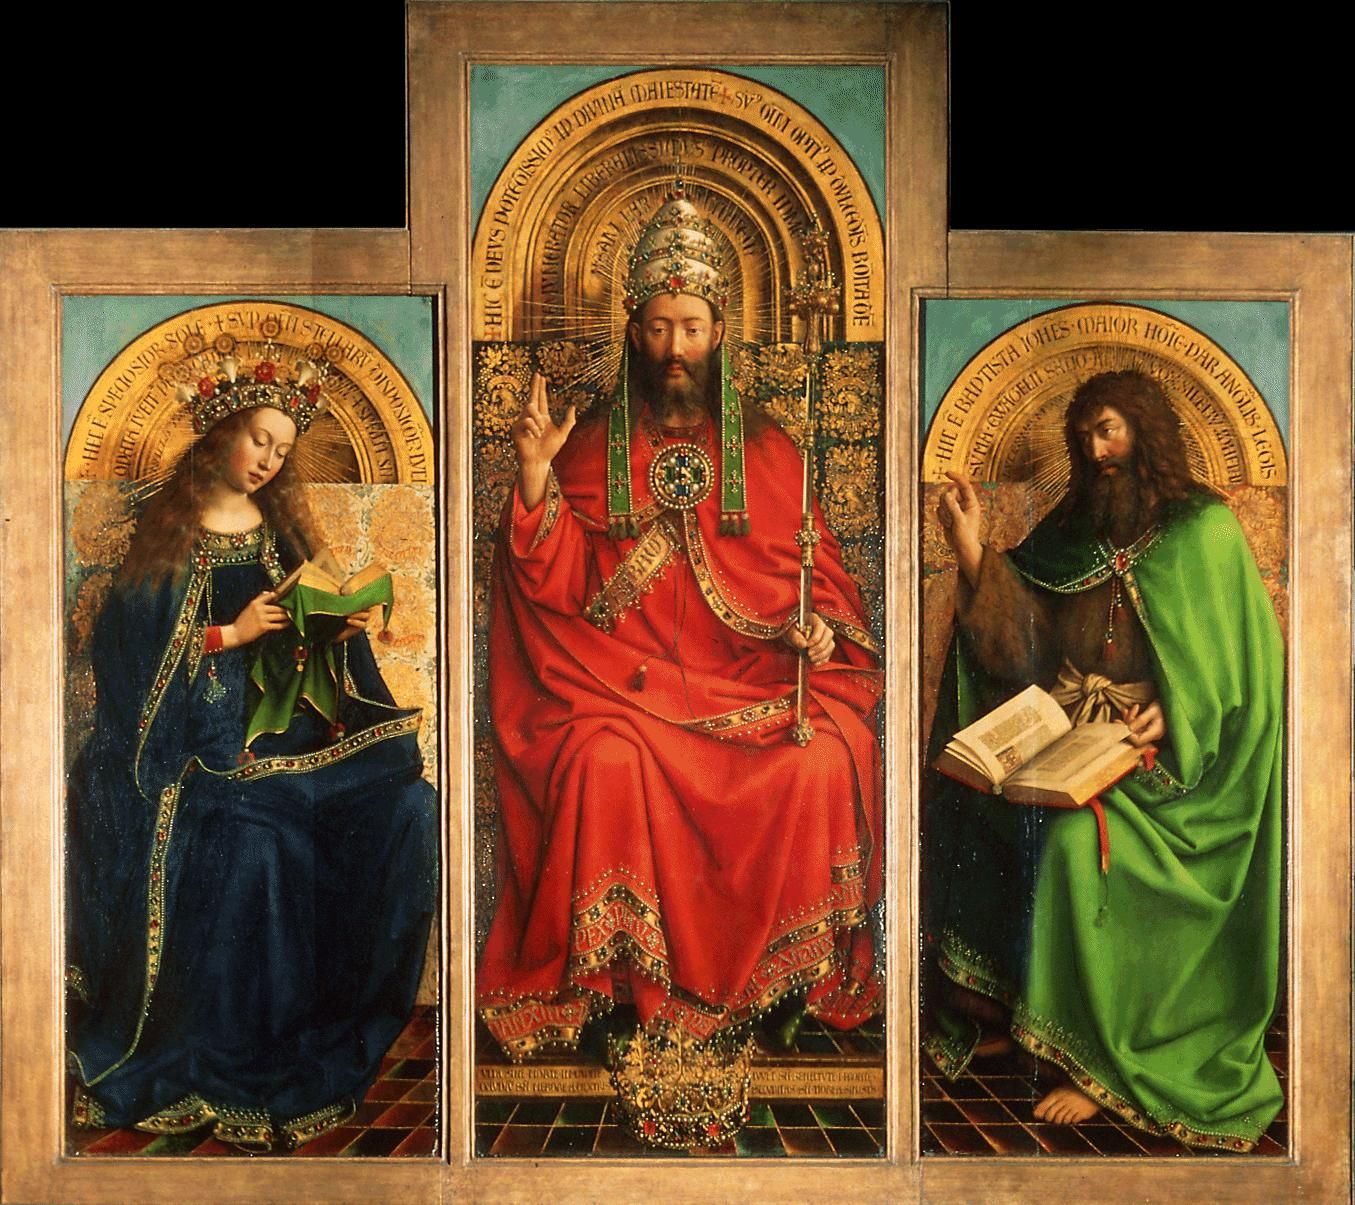 Pin On Religious Art And Architecture